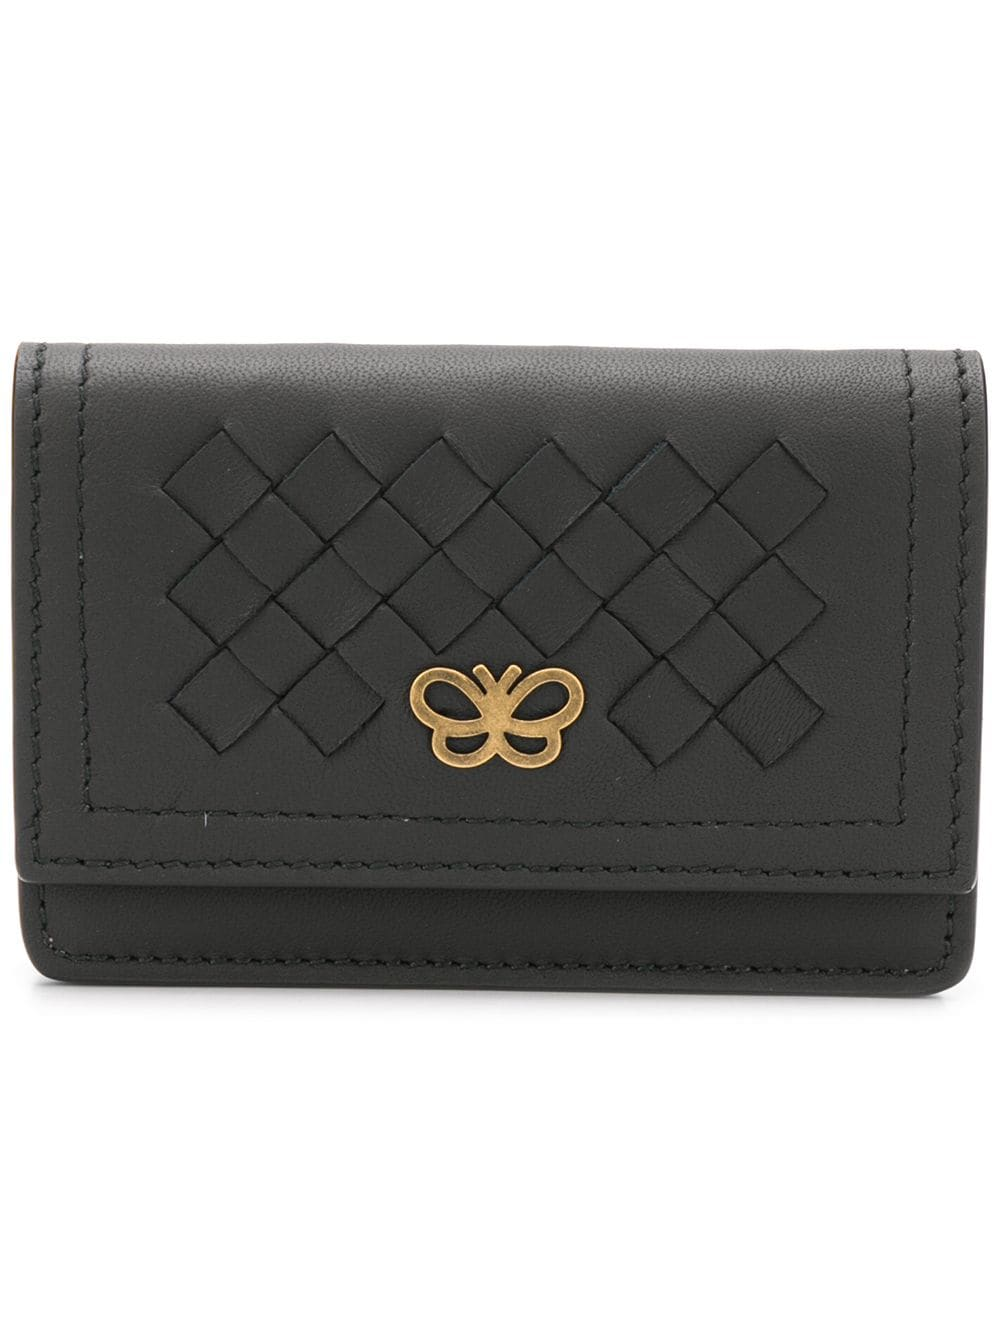 b555a5df47e3 Bottega Veneta woven leather wallet - Black - Glami.hu